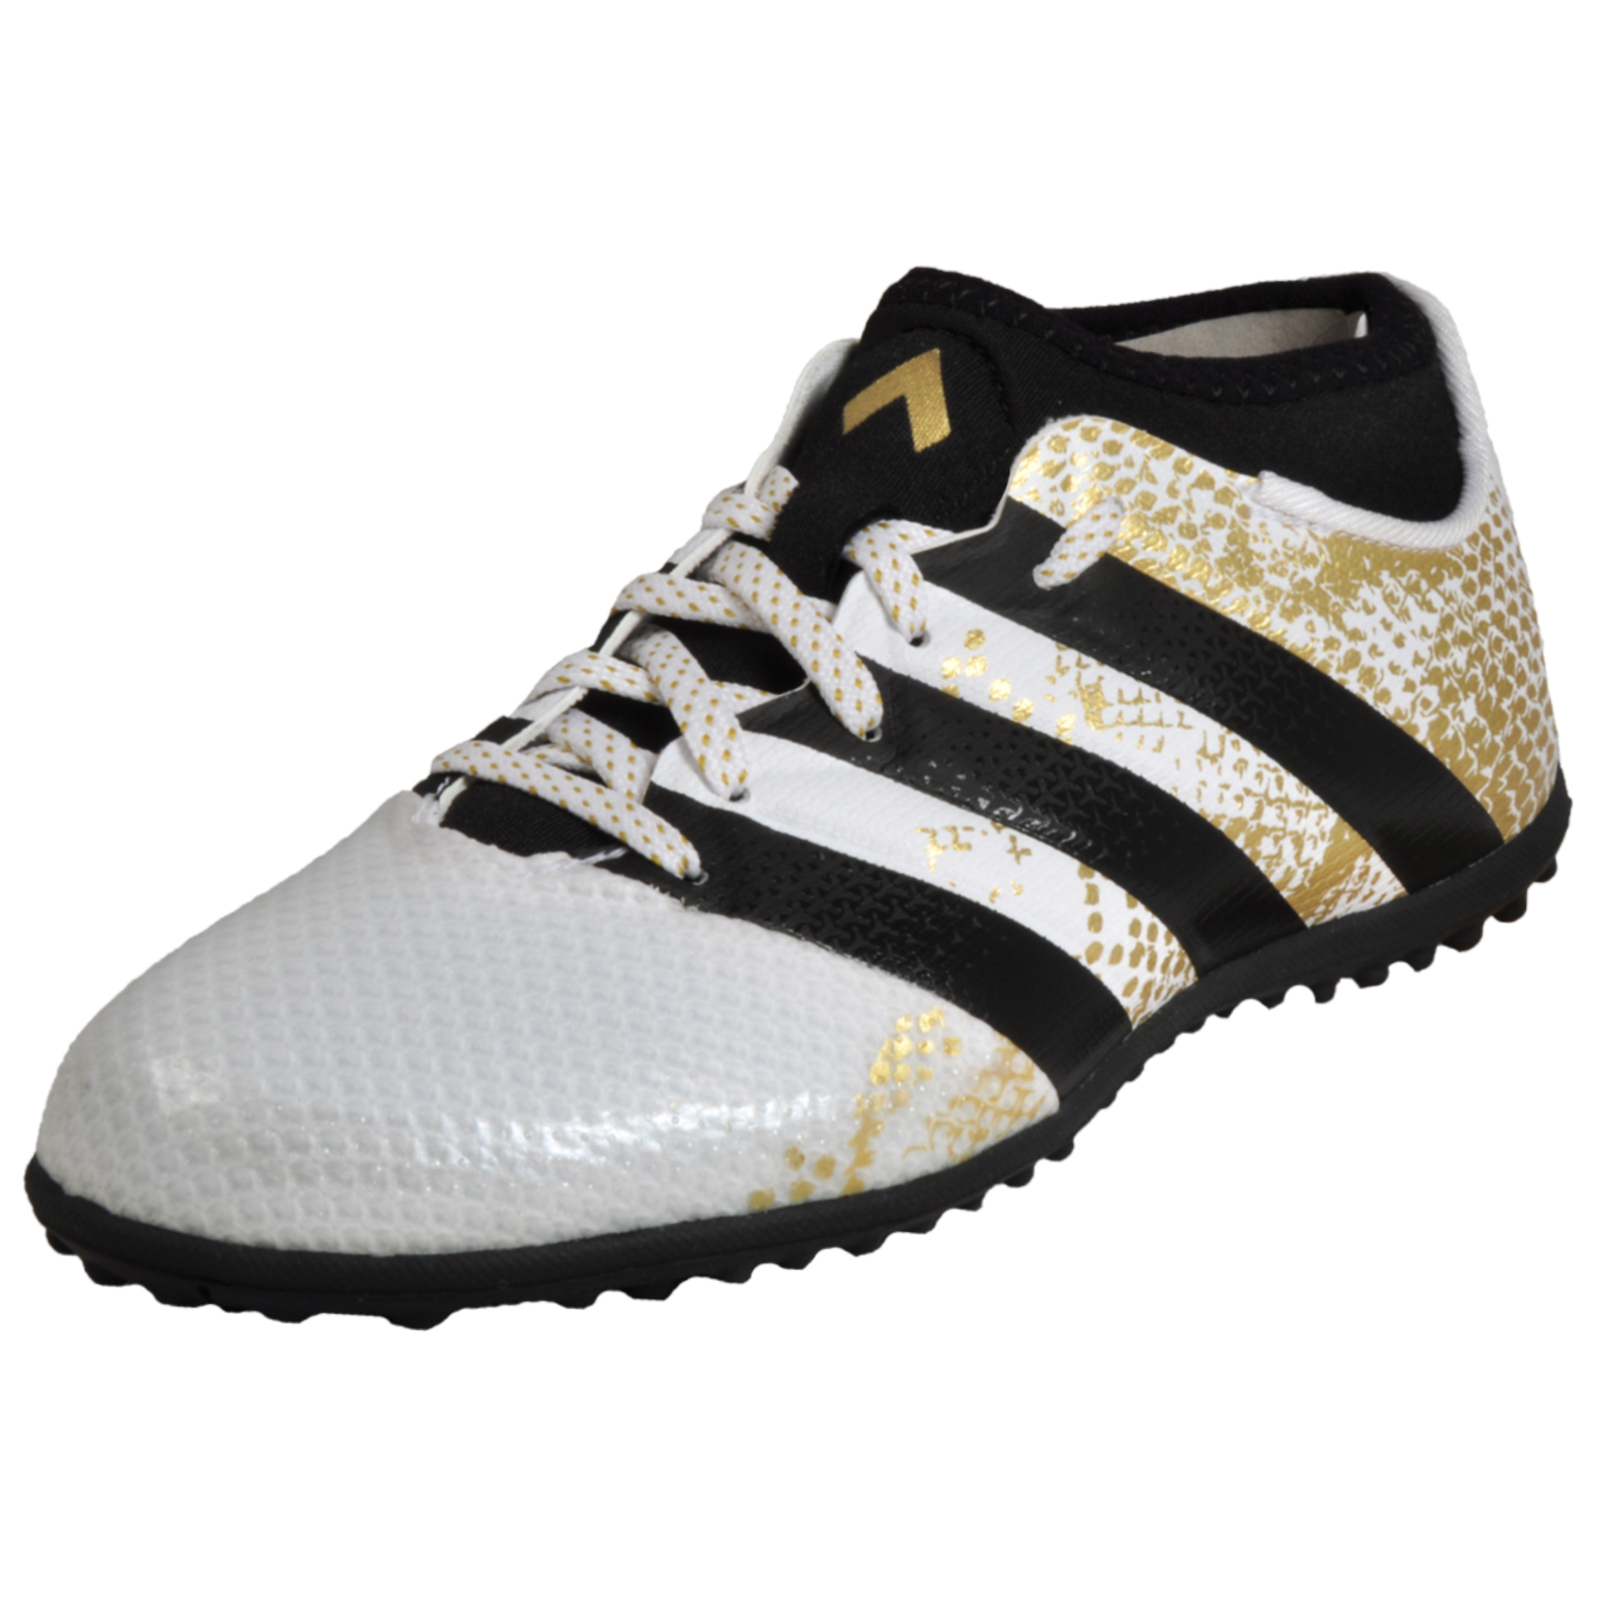 74fb74c41 Adidas Ace 16.3 Primemesh TF Junior Kids Boys Astro Turf Football Trainers  White